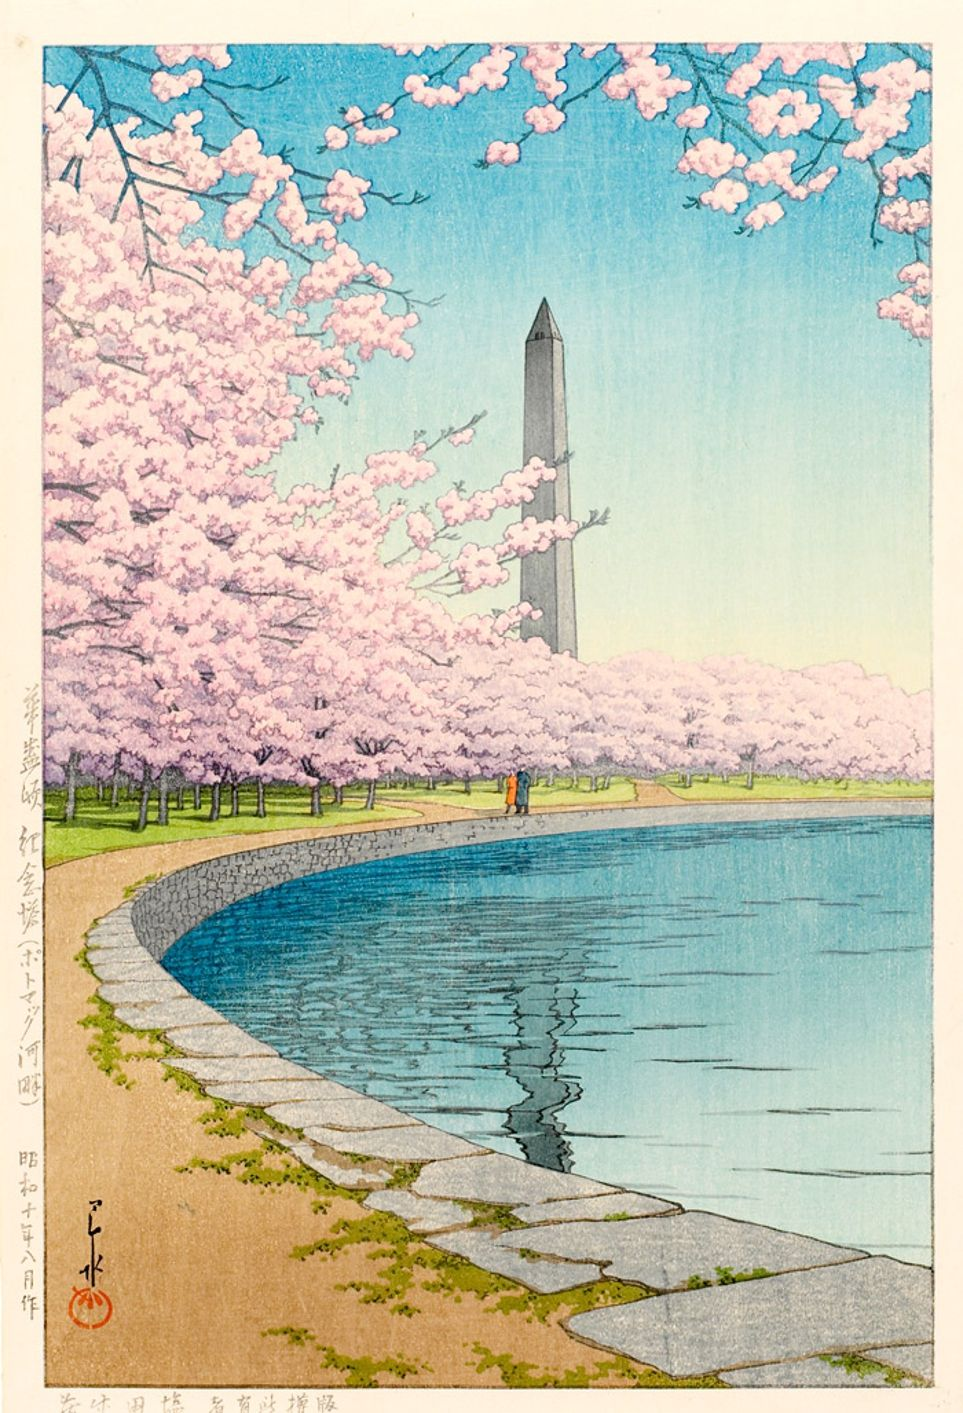 Color in japanese art -  Kawase Hasui The Washington Monument On The Potomac River Japan Color Woodblock Print 15 X 10 Source I Want One Of These So Bad